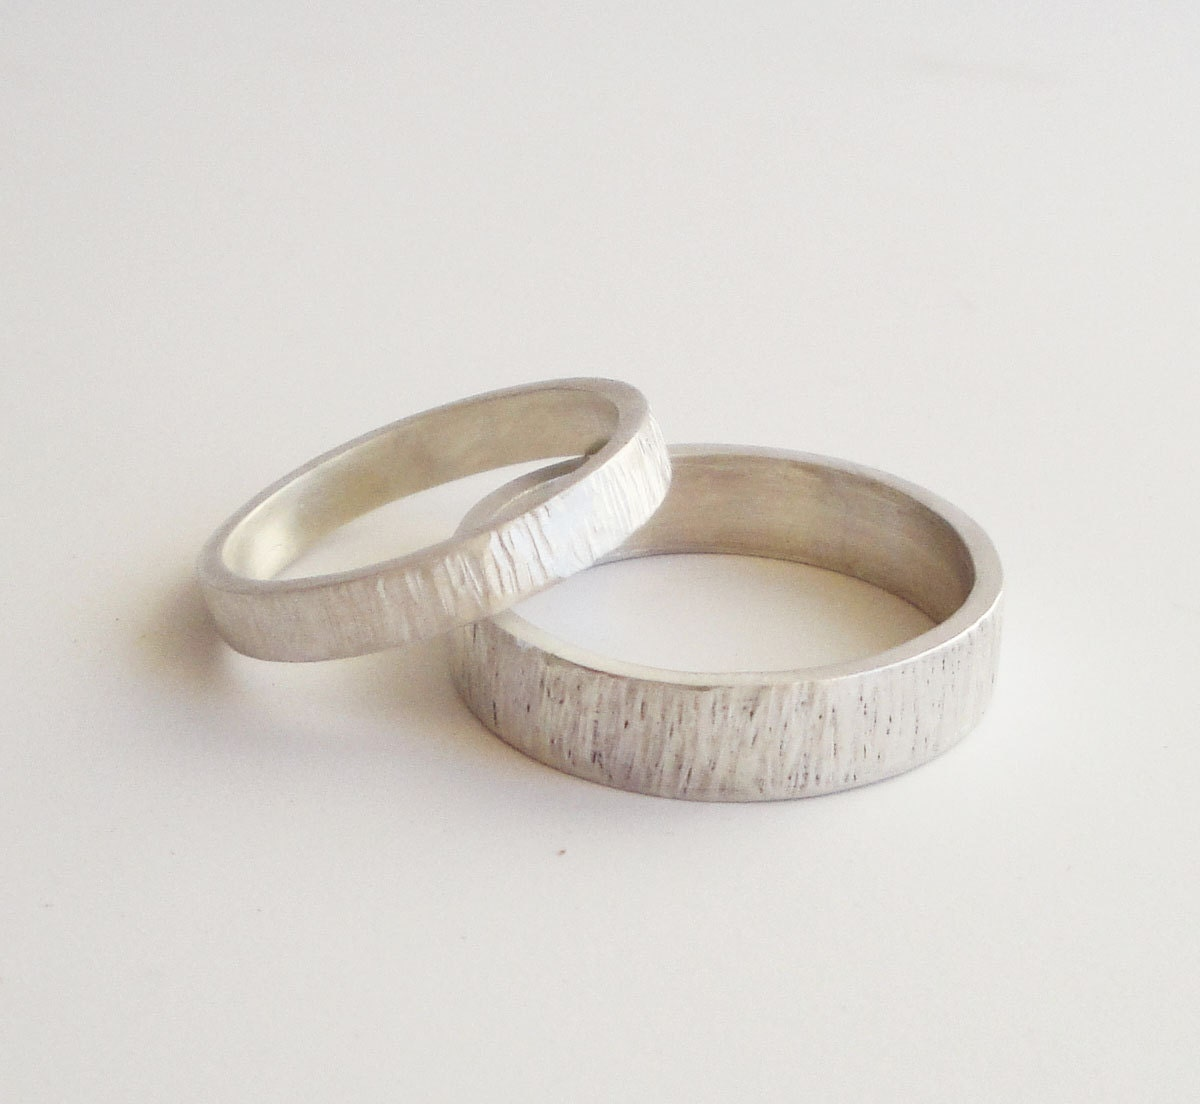 Silver wedding rings set handmade silver wedding band set for Wedding rings bands